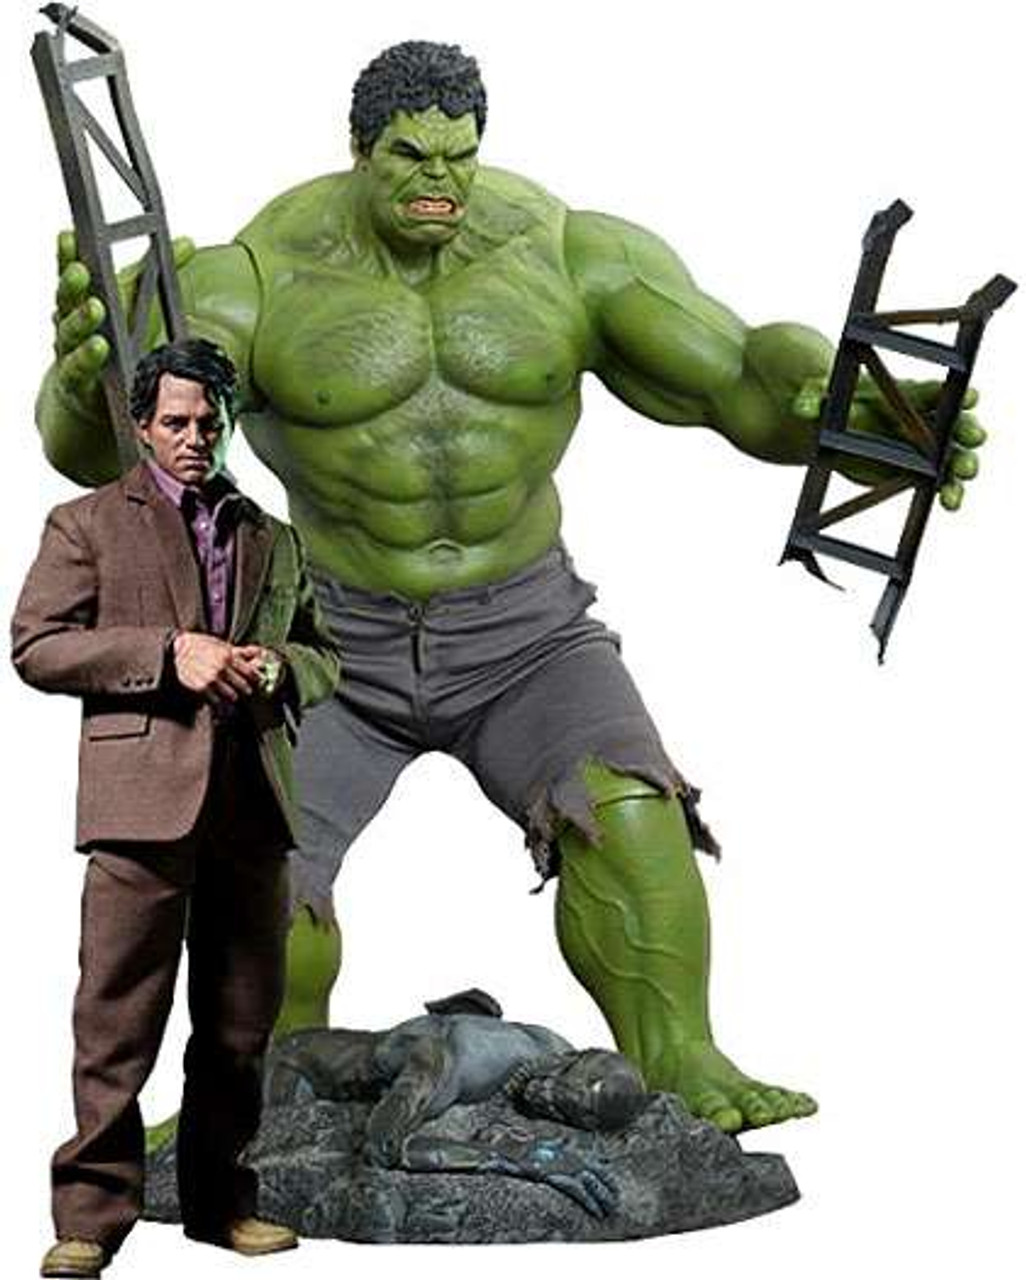 Marvel Avengers Movie Masterpiece Bruce Banner & Hulk 1/6 Collectible Figure